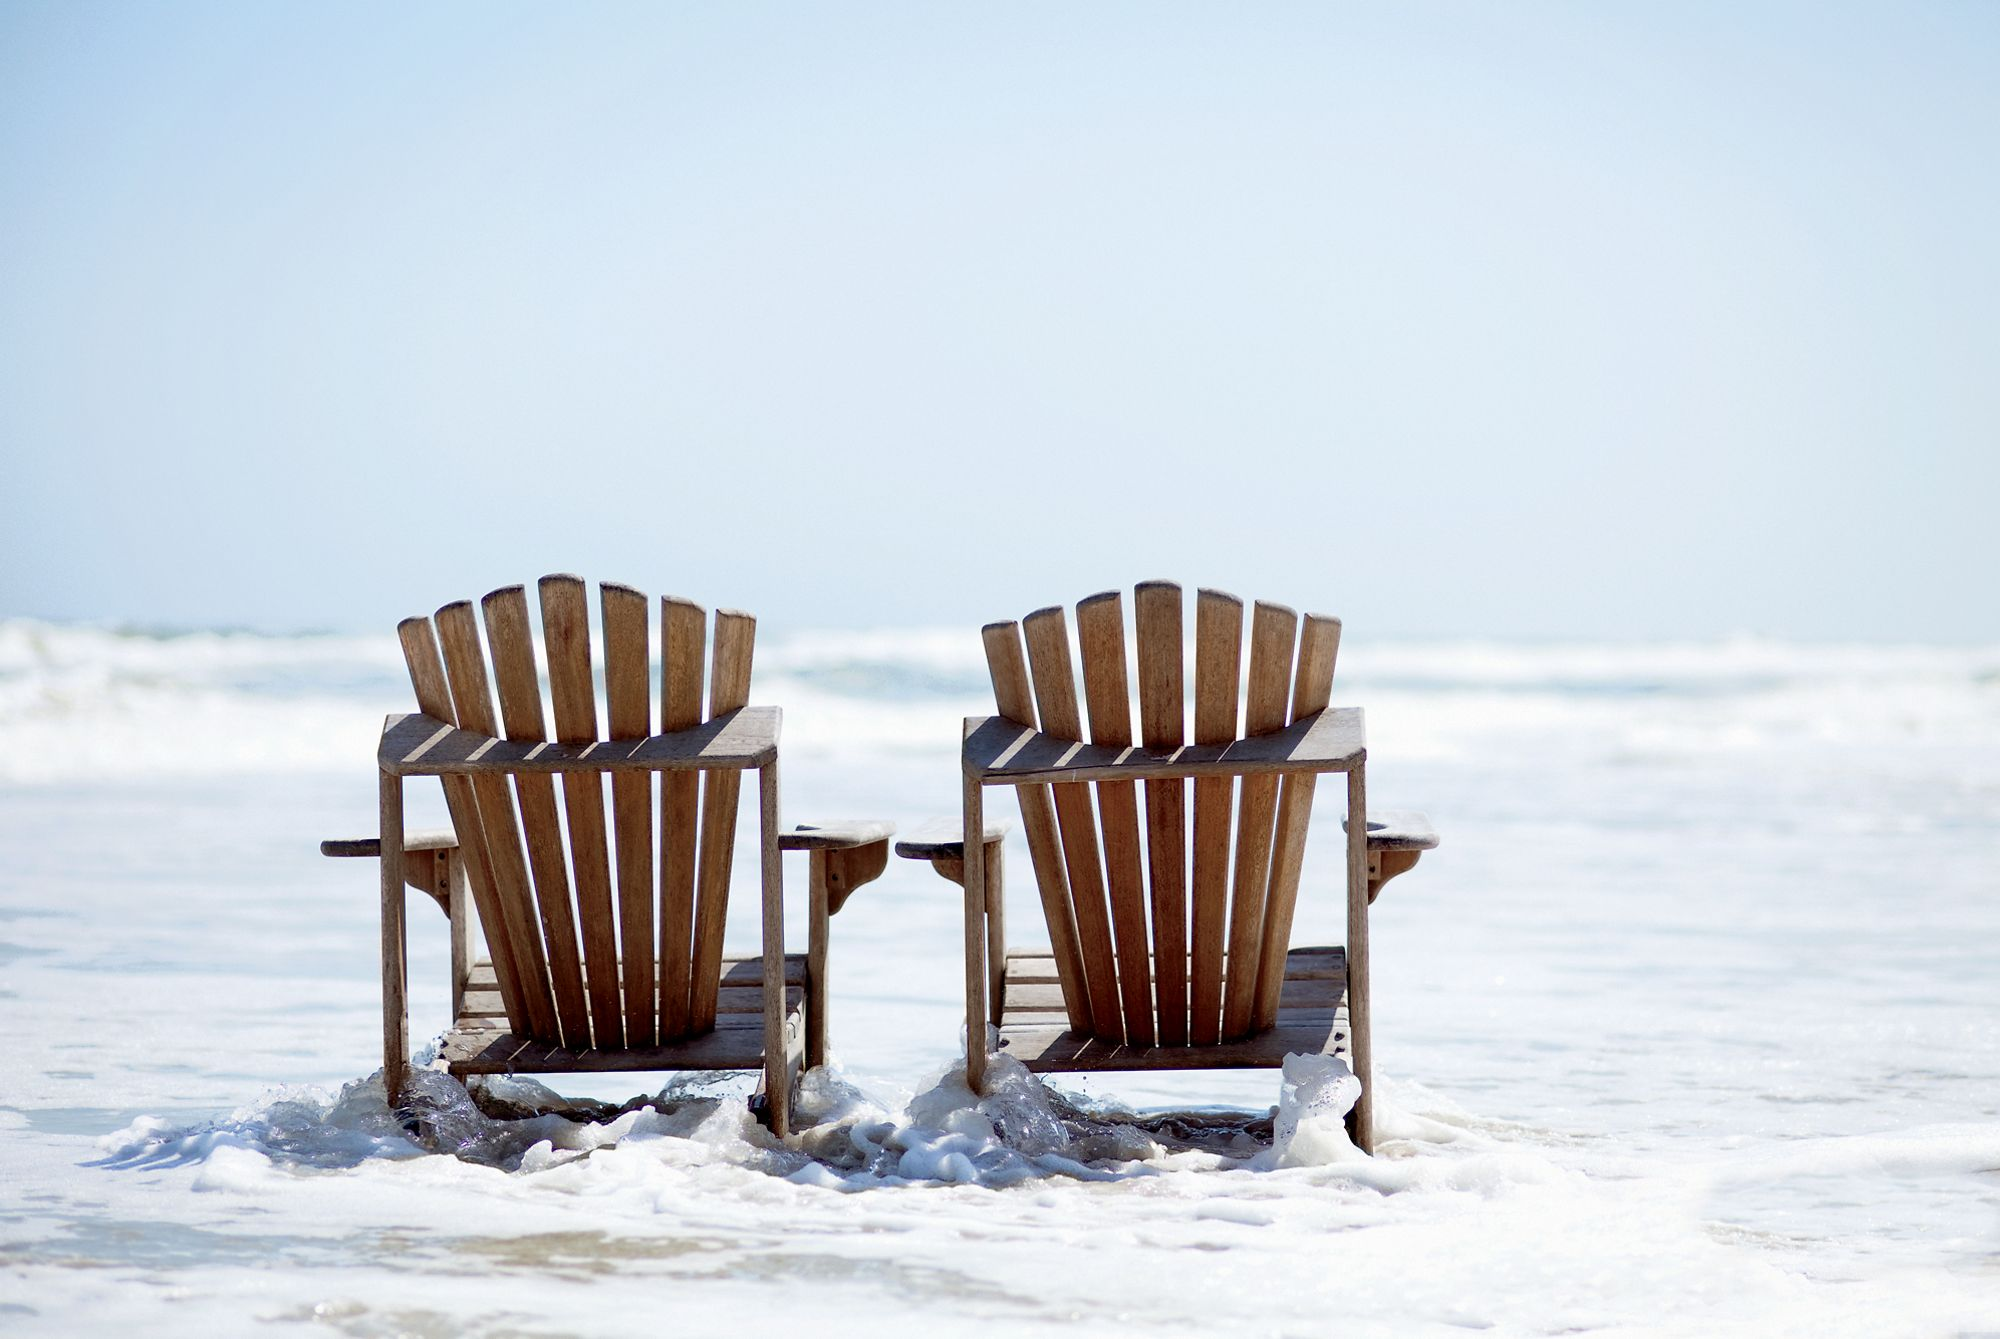 Two Adirondack chairs at the edge of the ocean